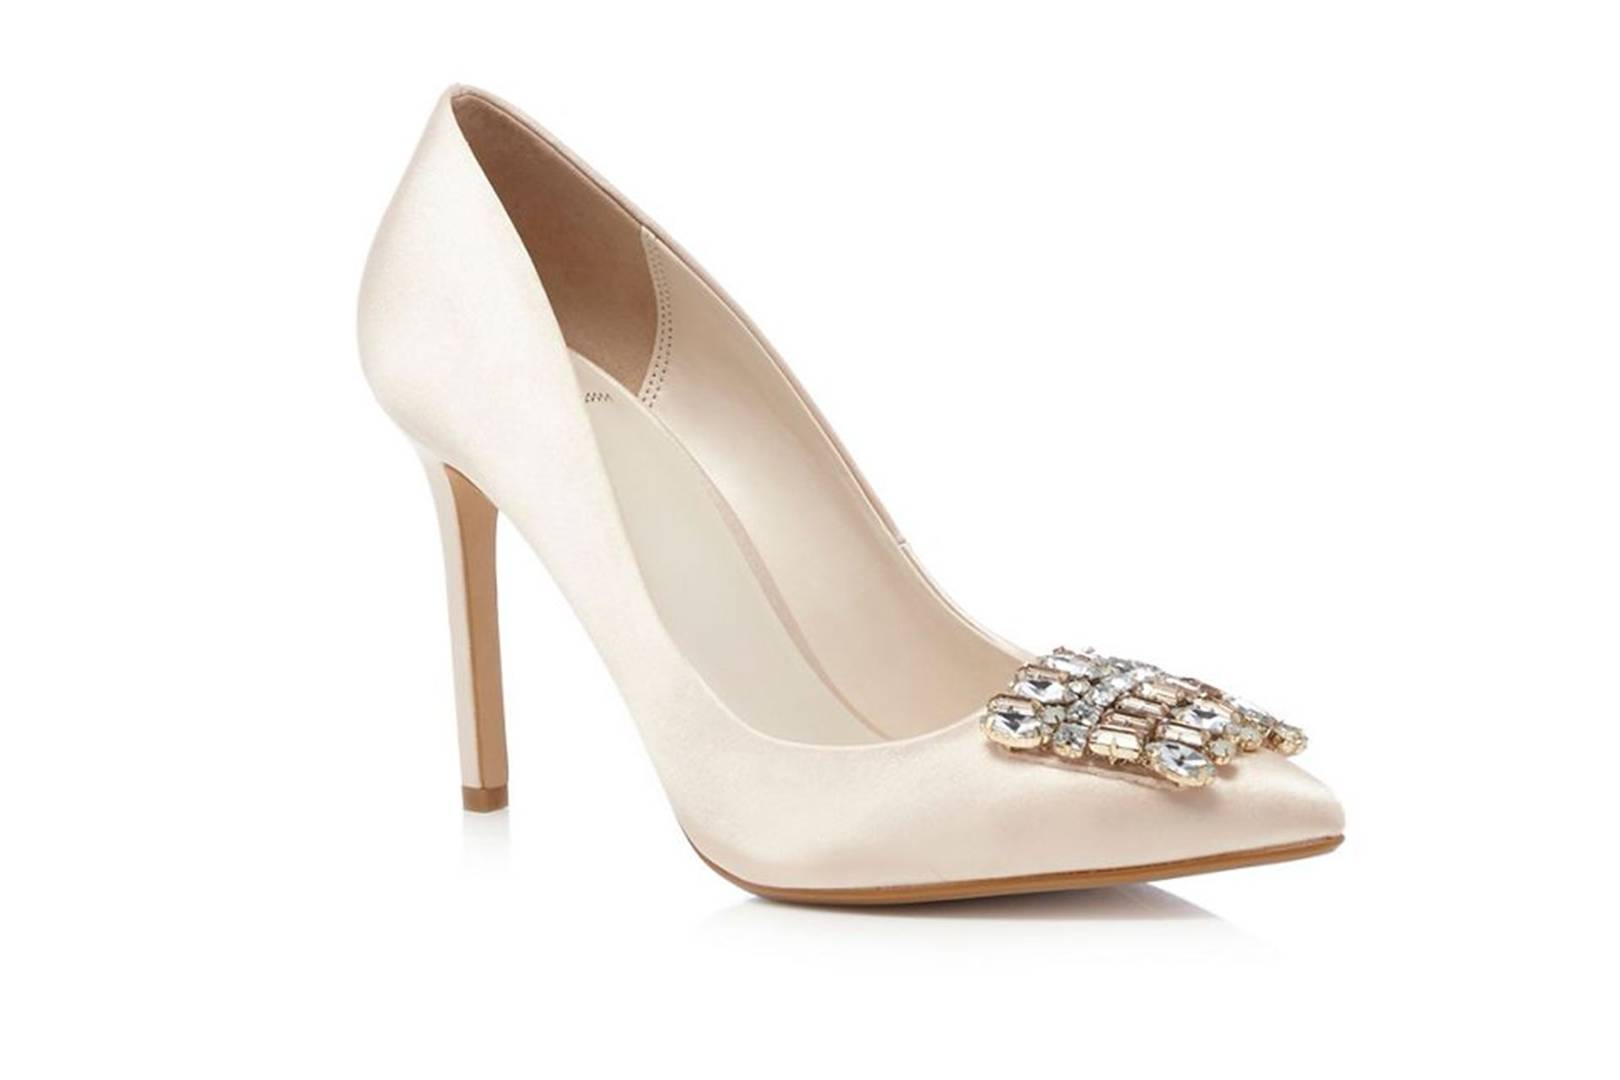 cfd9ef86e7c The Best Affordable Bridal Shoes To Shop Now